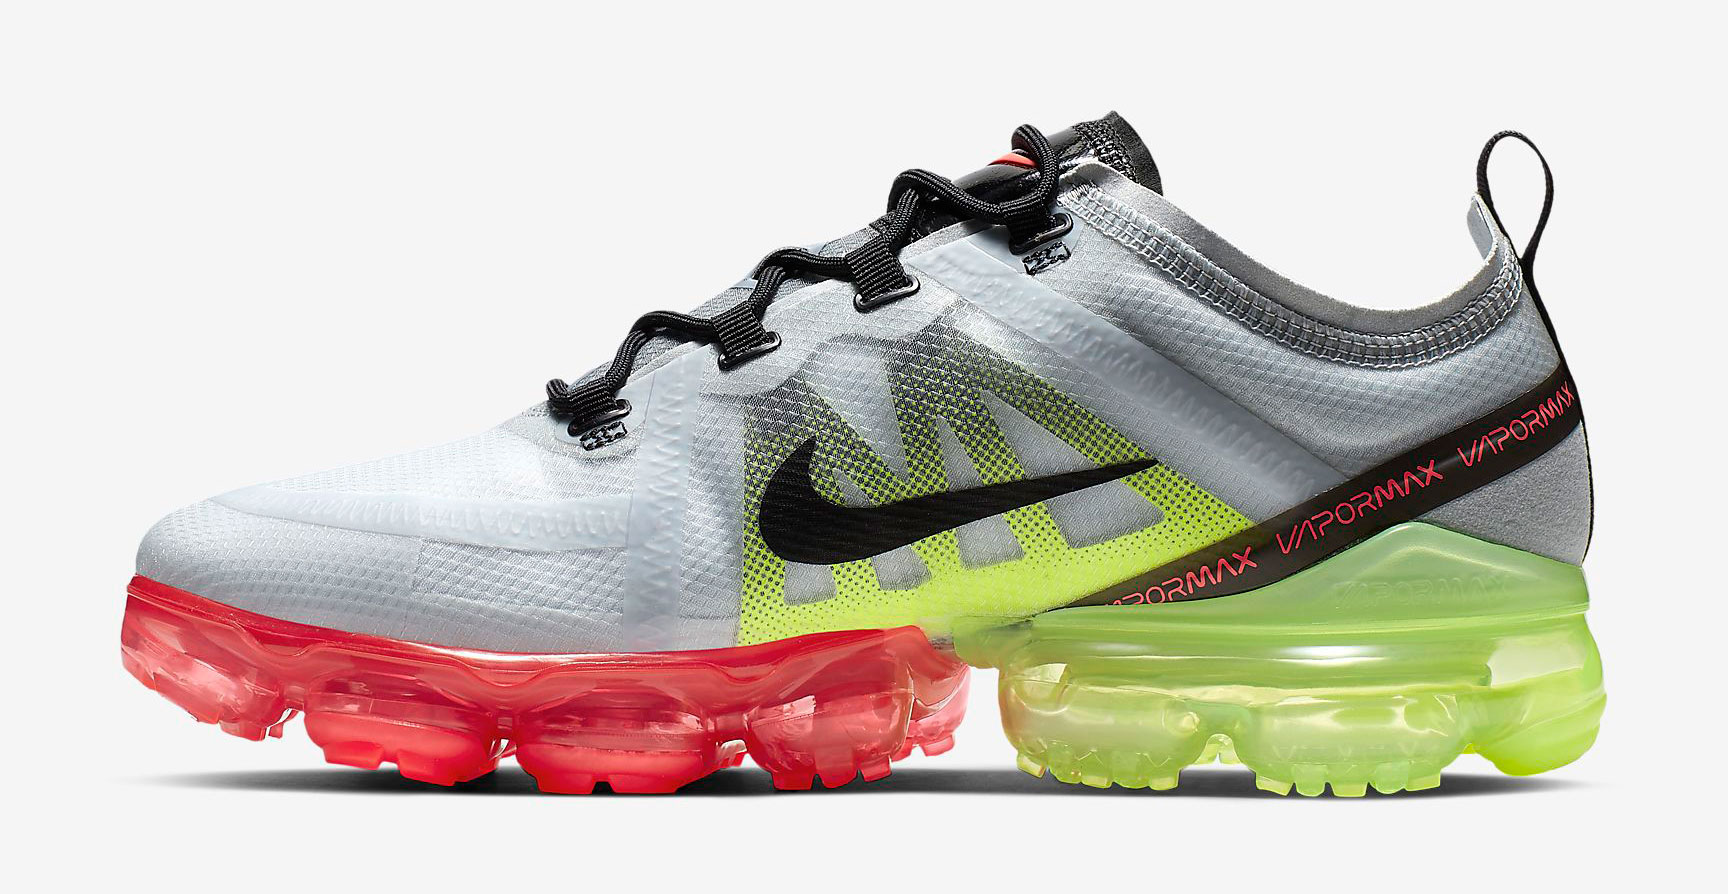 nike-air-vapormax-2019-retro-future-where-to-buy